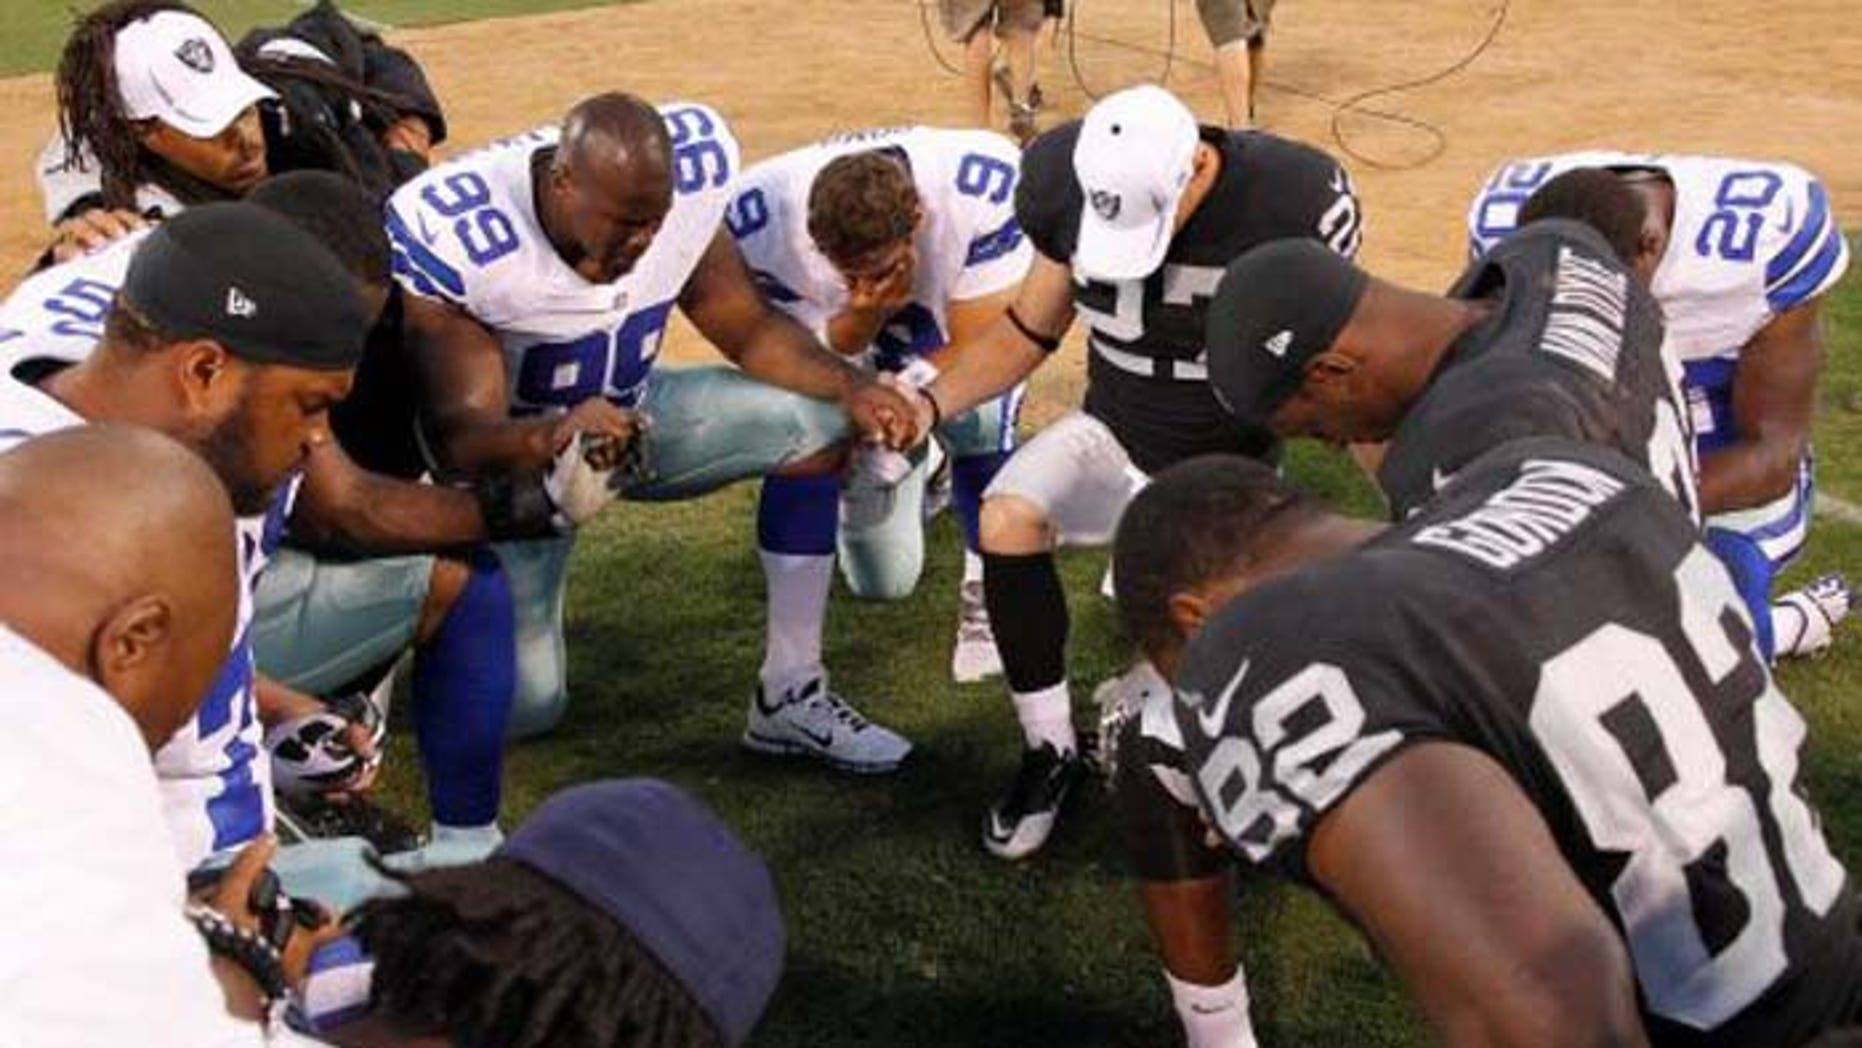 Praying after games is a football tradition, as seen here following an NFL contest between the Dallas Cowboys and the Oakland Raiders. (AP)